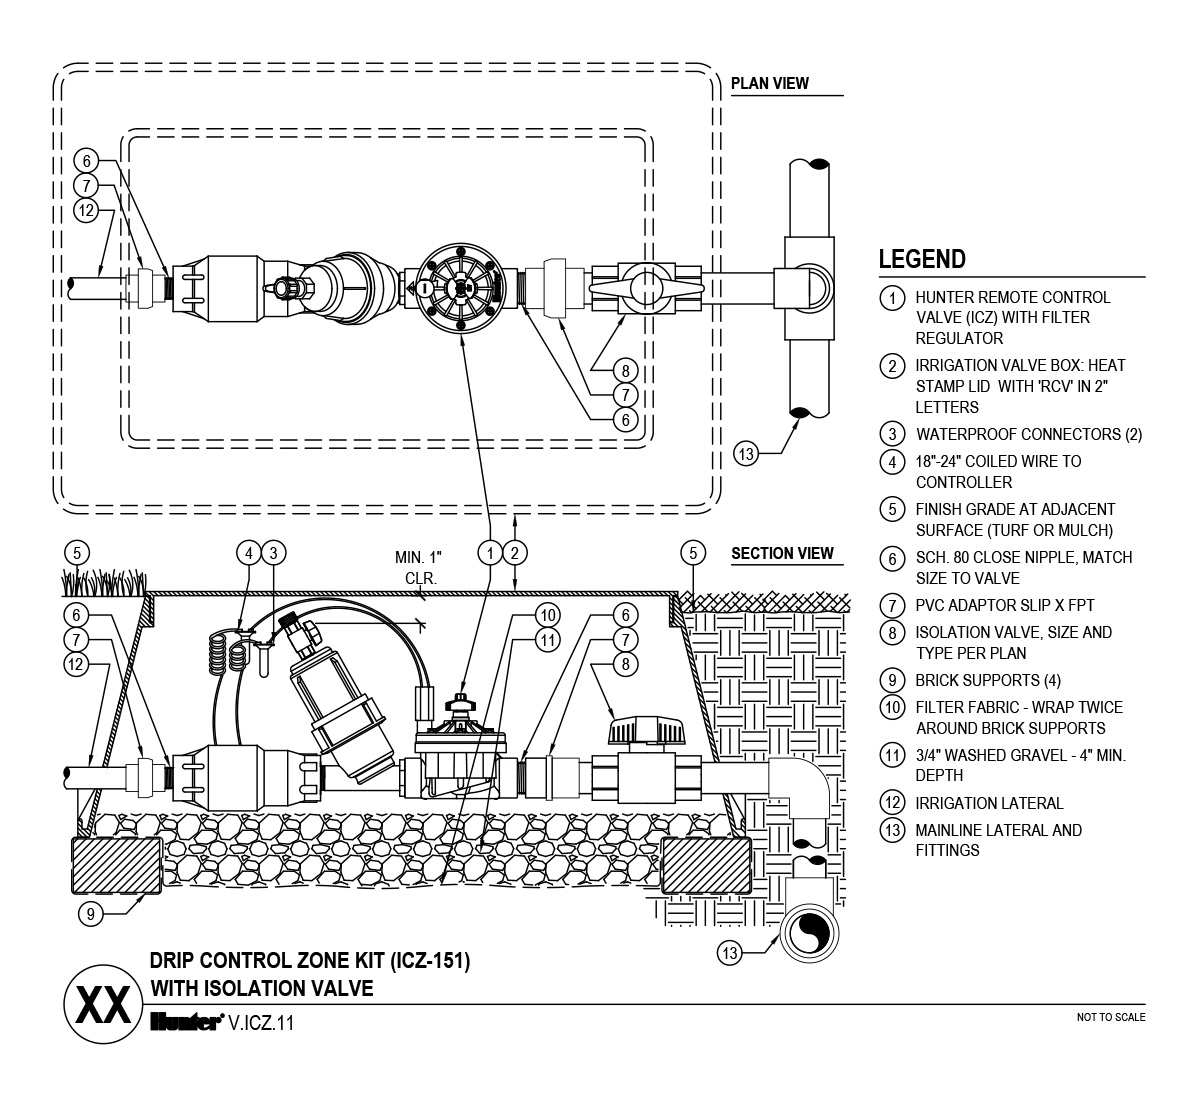 CAD - Drip Control Zone Kit (ICZ-151) with isolation valve